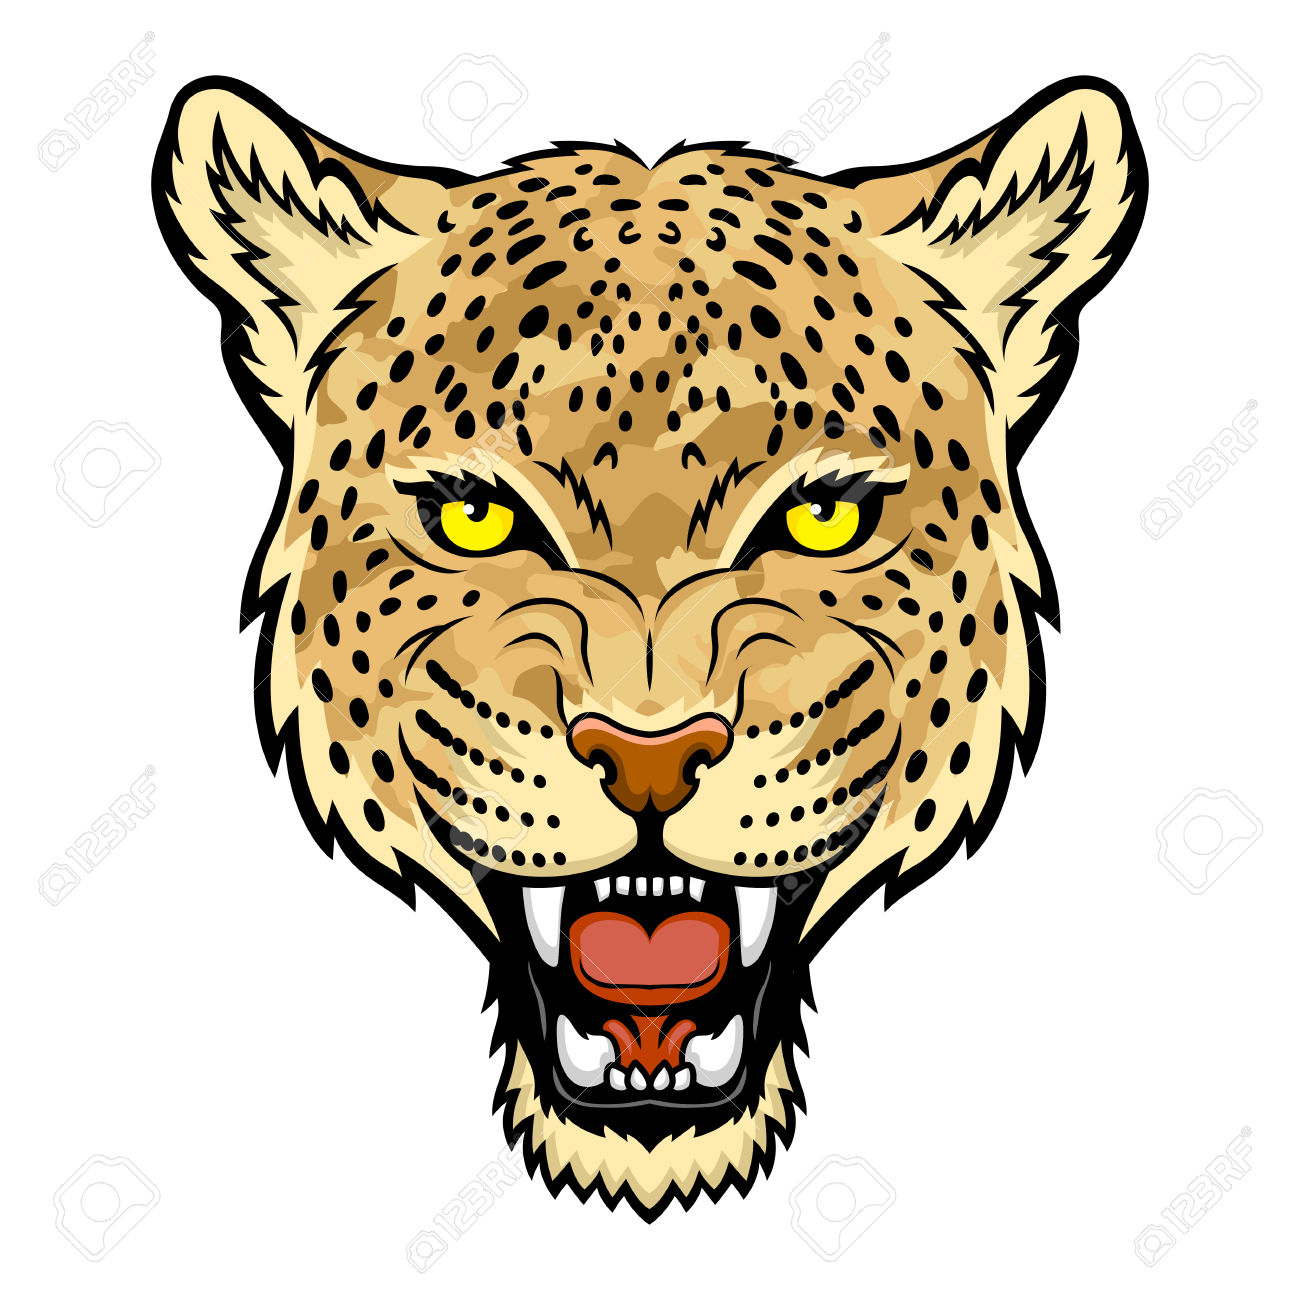 665 Leopard Portrait Cliparts, Stock Vector And Royalty Free.